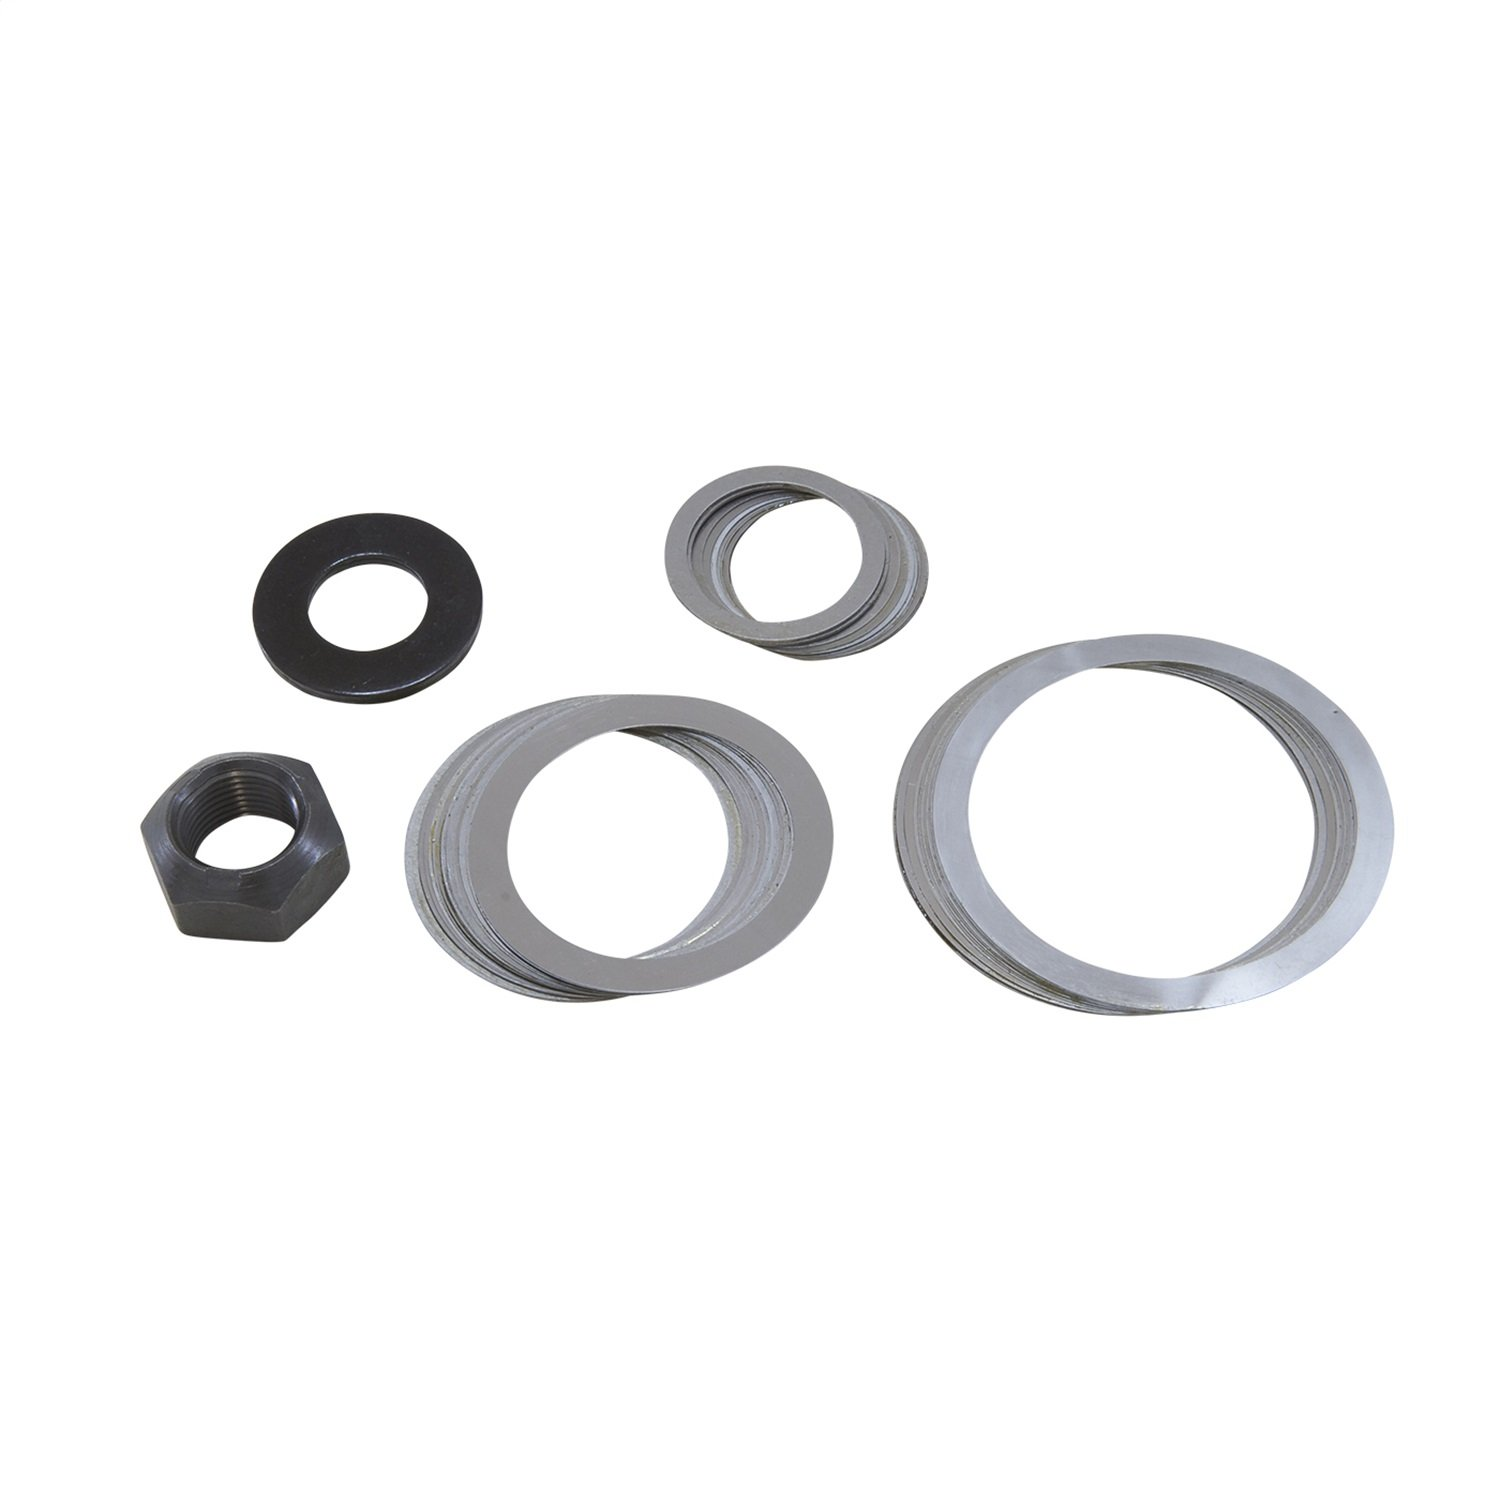 Yukon Gear & Axle (SK 706386) Replacement Shim Kit for Dana 30, Front & Rear, also D36ICA & Dana 44ICA.